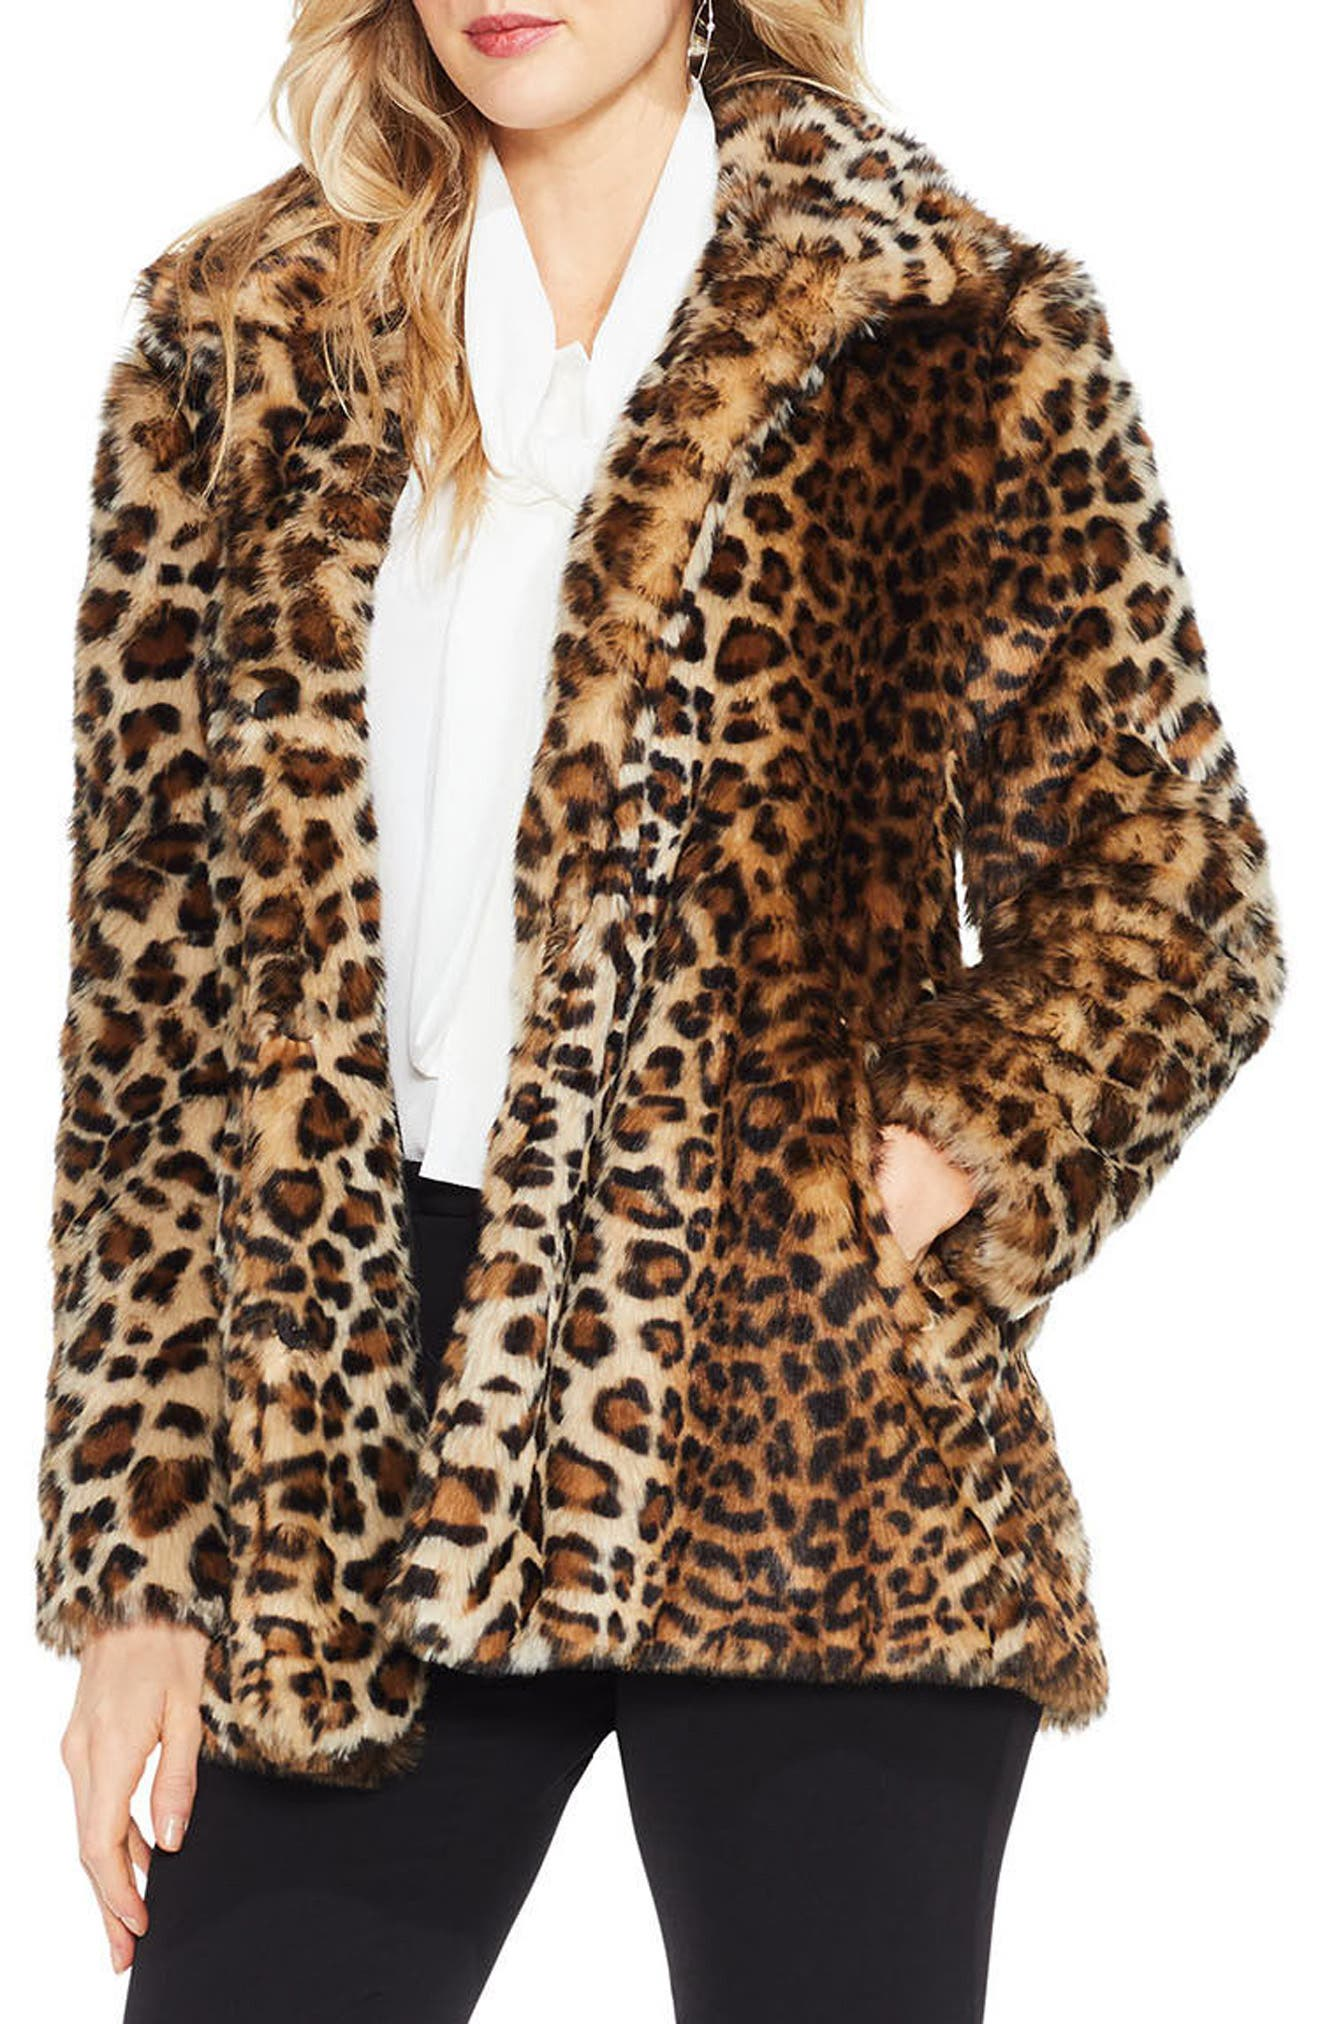 Leopard Print Faux Fur Jacket,                             Main thumbnail 1, color,                             208